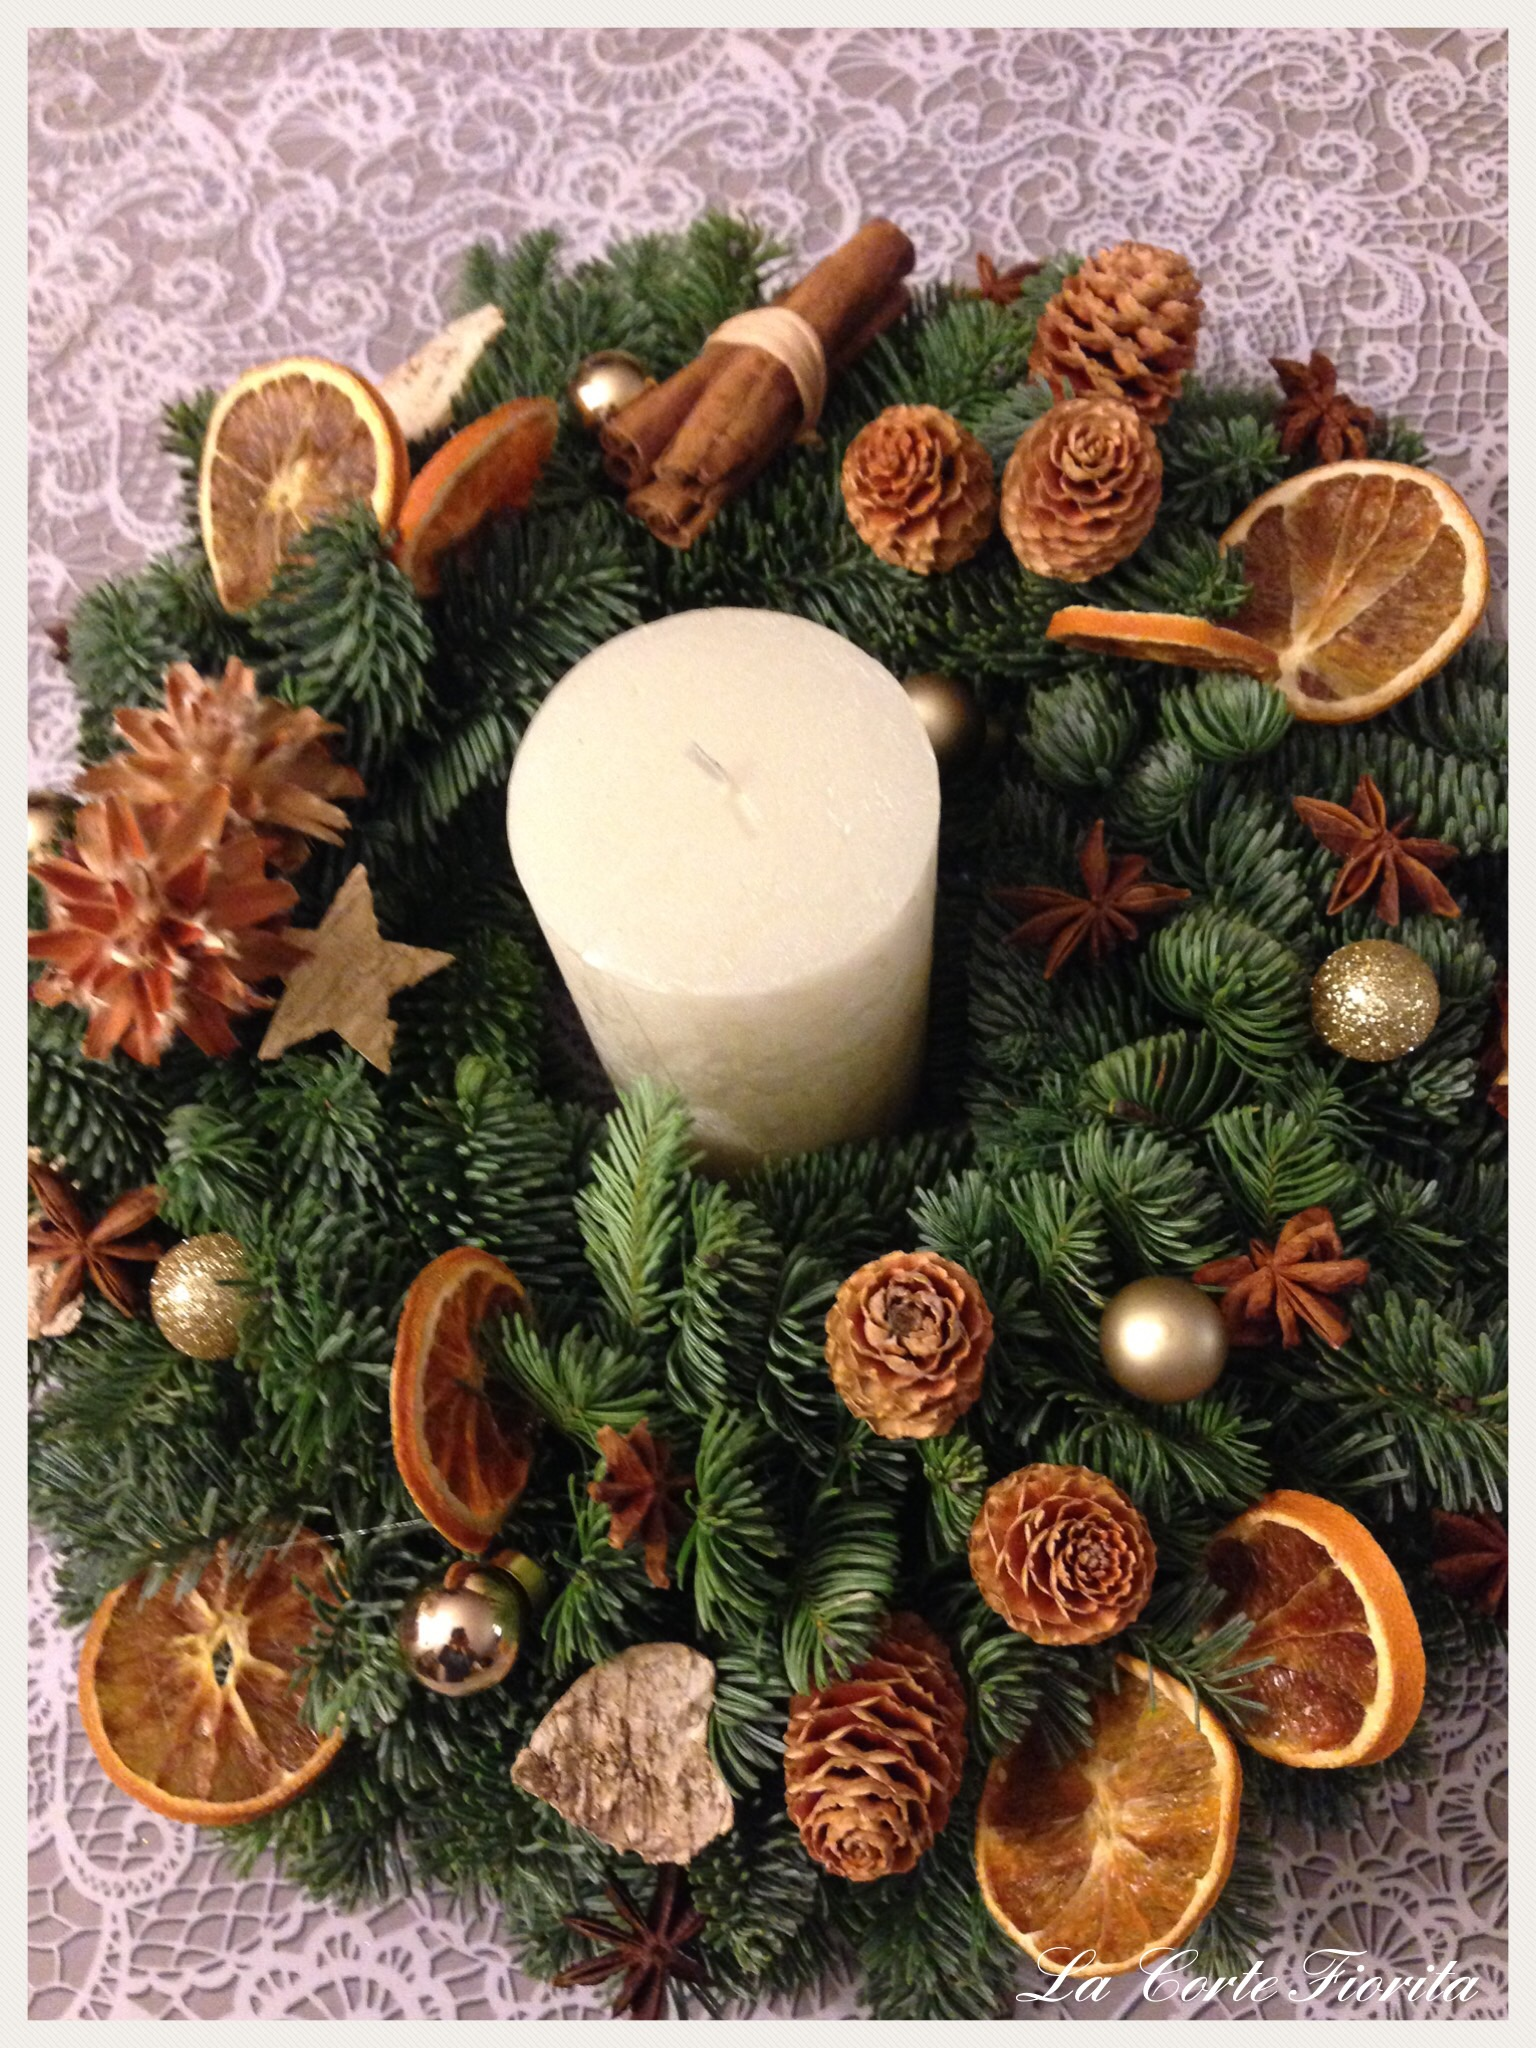 Christmas wreath in a natural style